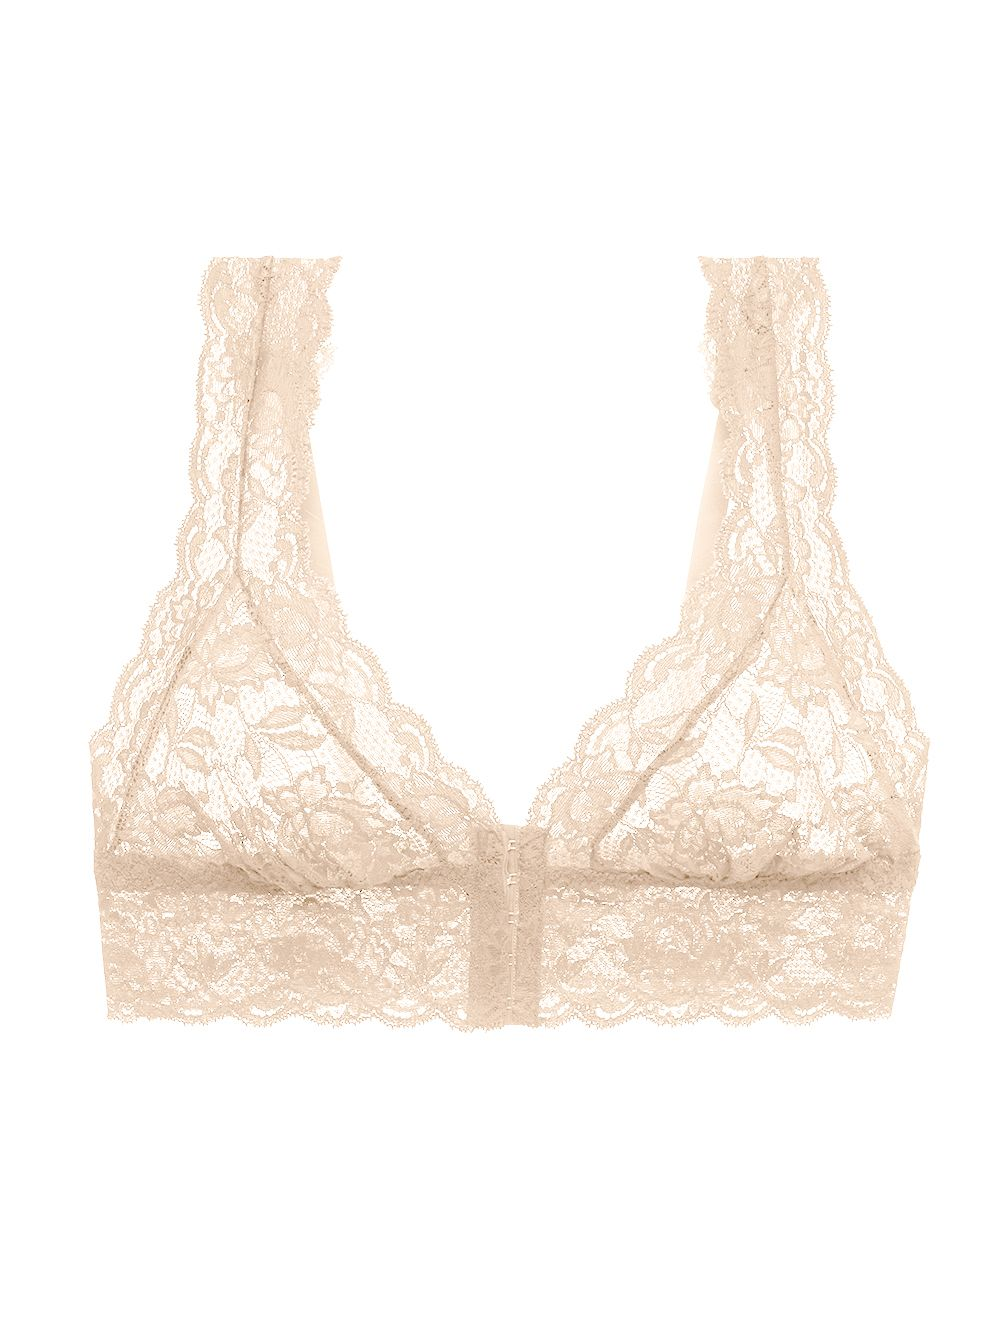 "Cosabella reggiseno ""The Happie"" Bra 1395 grigiio"